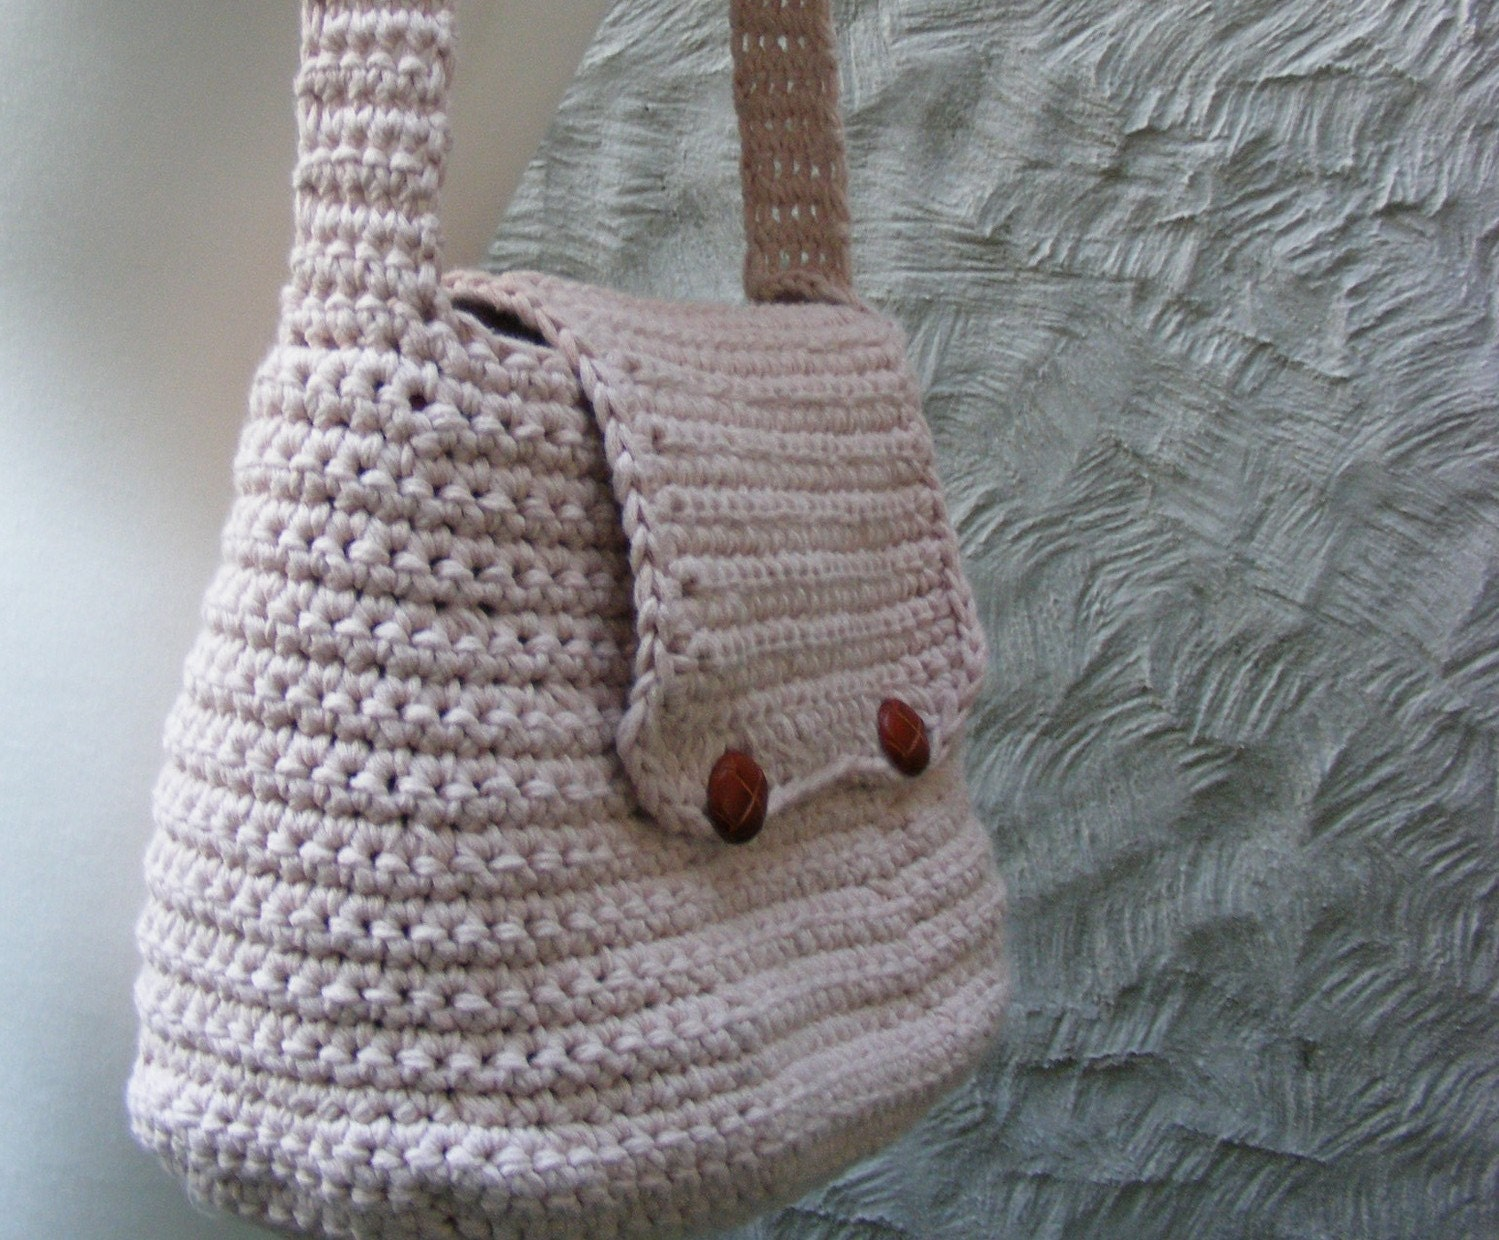 Crochet Small Tote Bag Pattern : Bag Crochet Pattern Large Crochet Bag / by TheHappyCrocheter